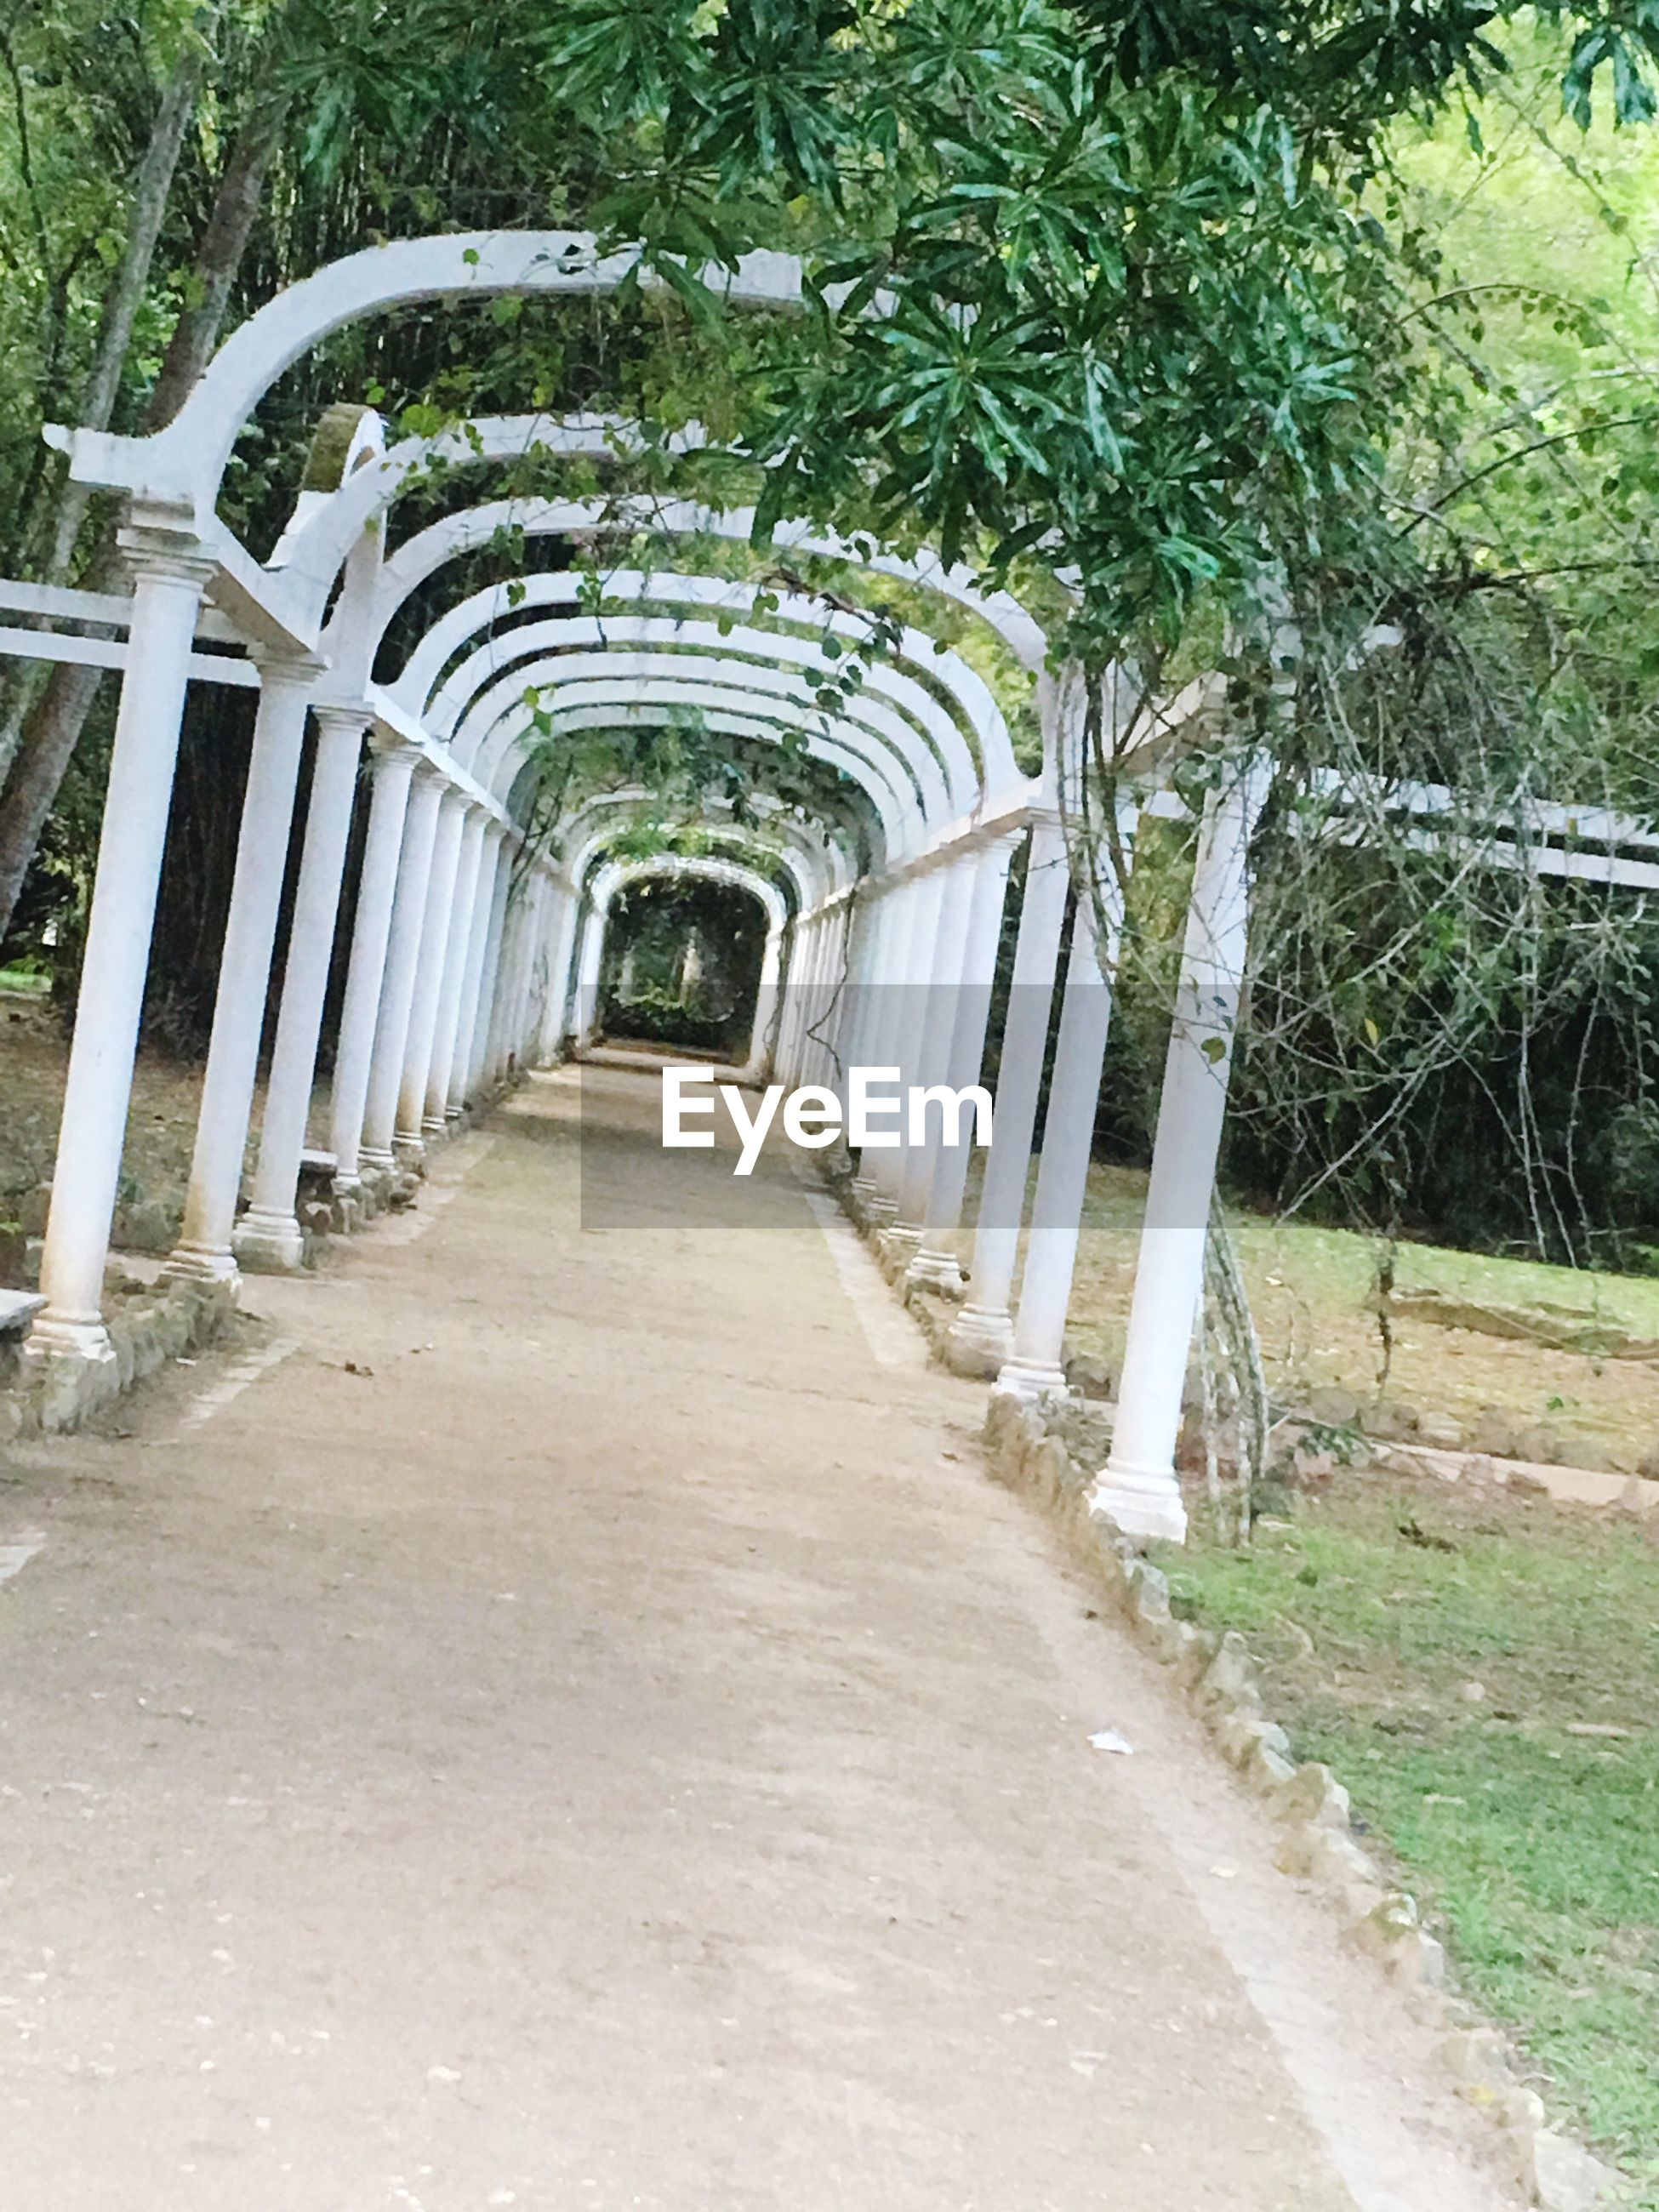 the way forward, arch, diminishing perspective, plant, in a row, narrow, ivy, built structure, long, empty, architecture, archway, vanishing point, corridor, pergola, outdoors, day, creeper plant, footpath, lush foliage, formal garden, growth, repetition, no people, arcade, stone, arched, tranquility